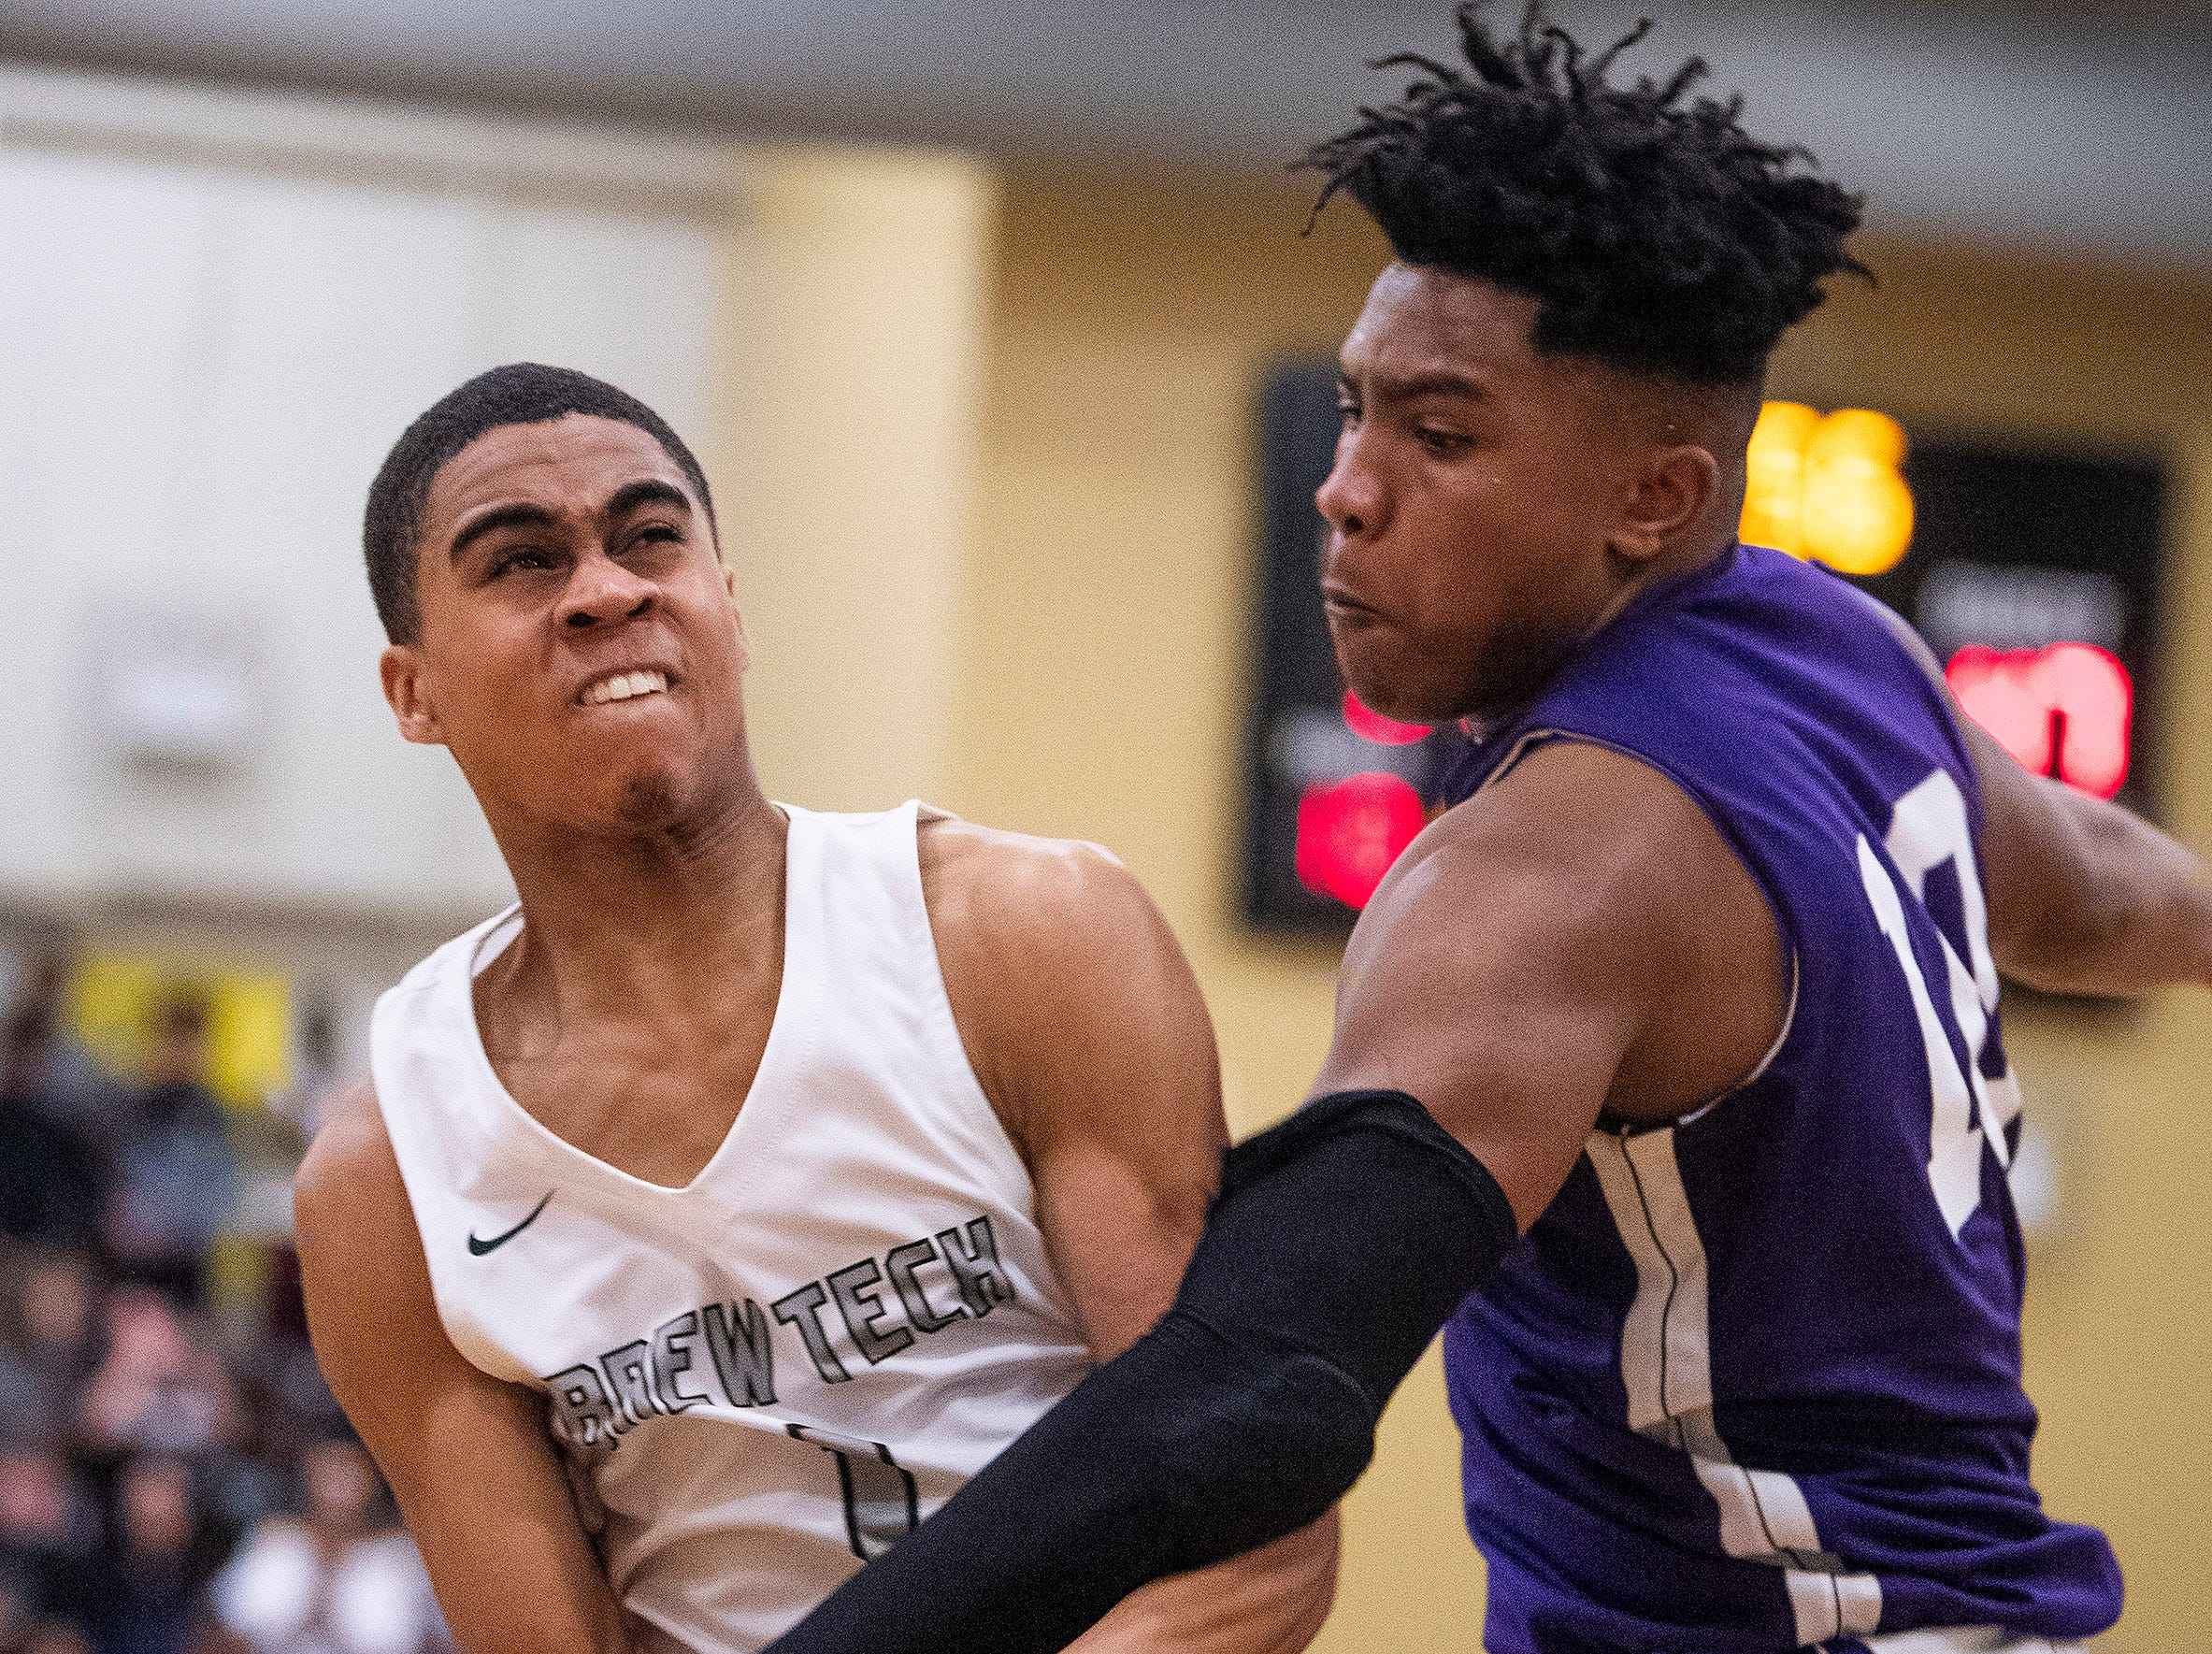 Brewbaker Tech's Evan Carter (1) is fouled by Tallassee's Tavarious Griffin (10) at the BrewTech campus in Montgomery, Ala., on Thursday February 7, 2019.